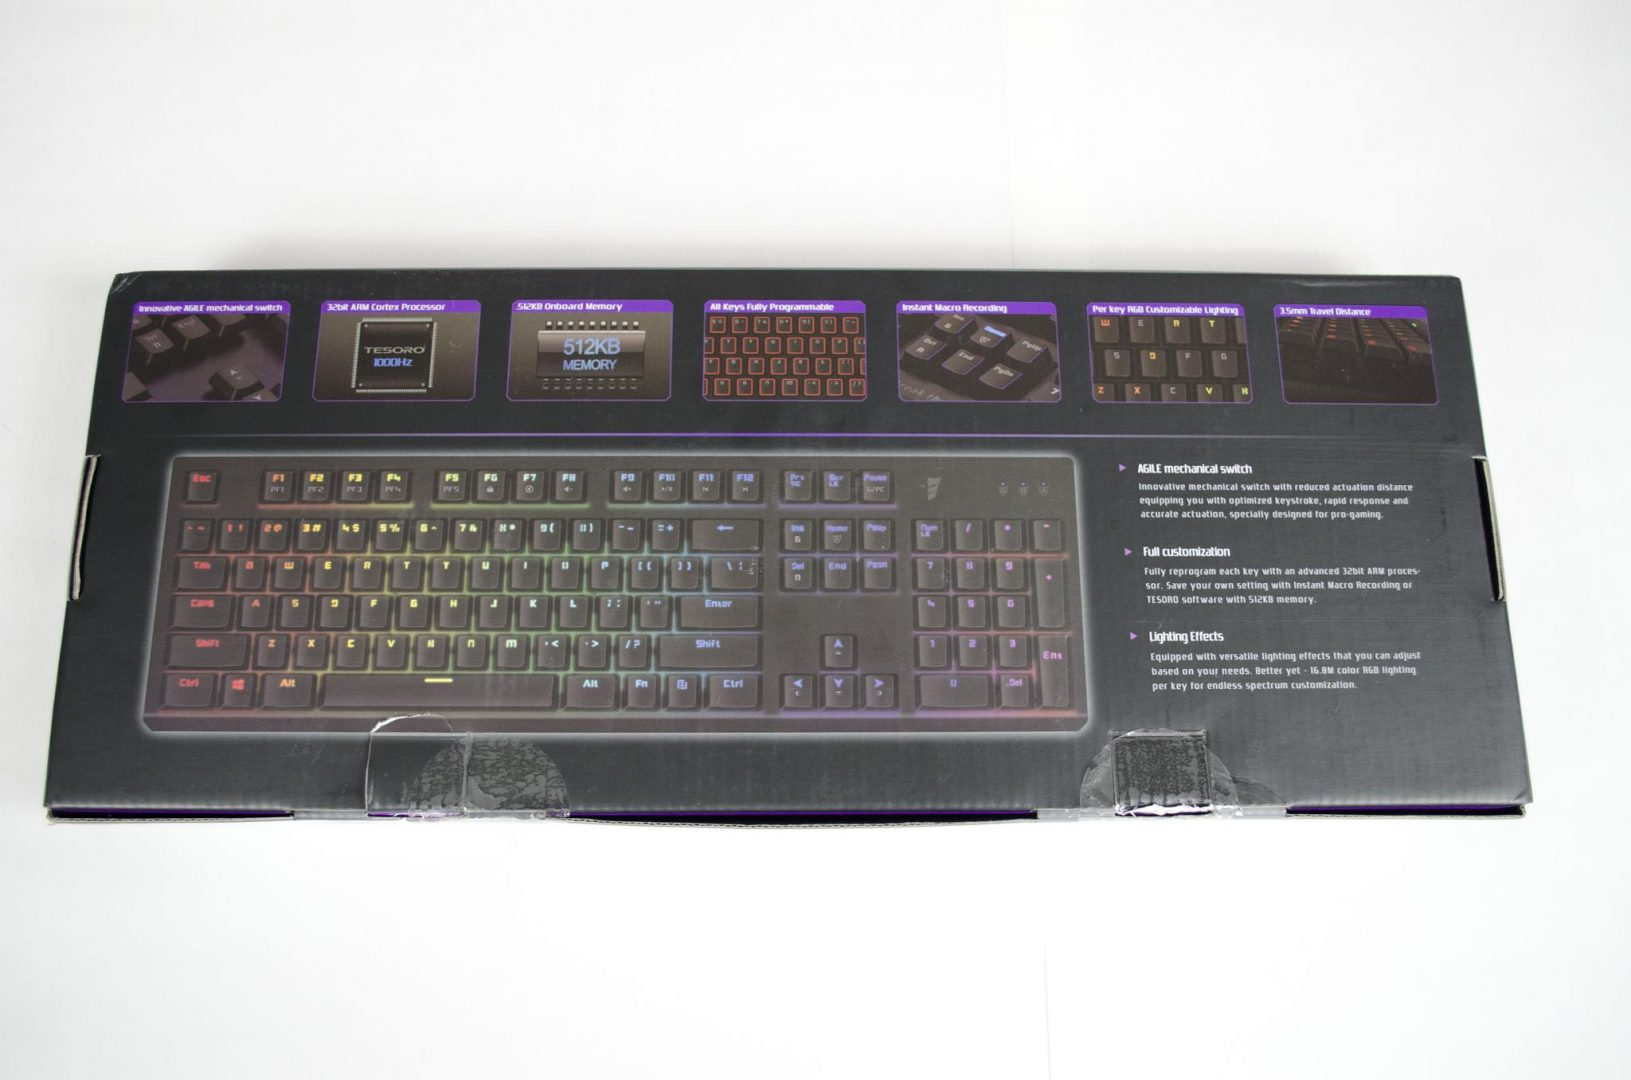 tesoro-gram-spectrum-rgm-gaming-mechanical-keyboard-review_5